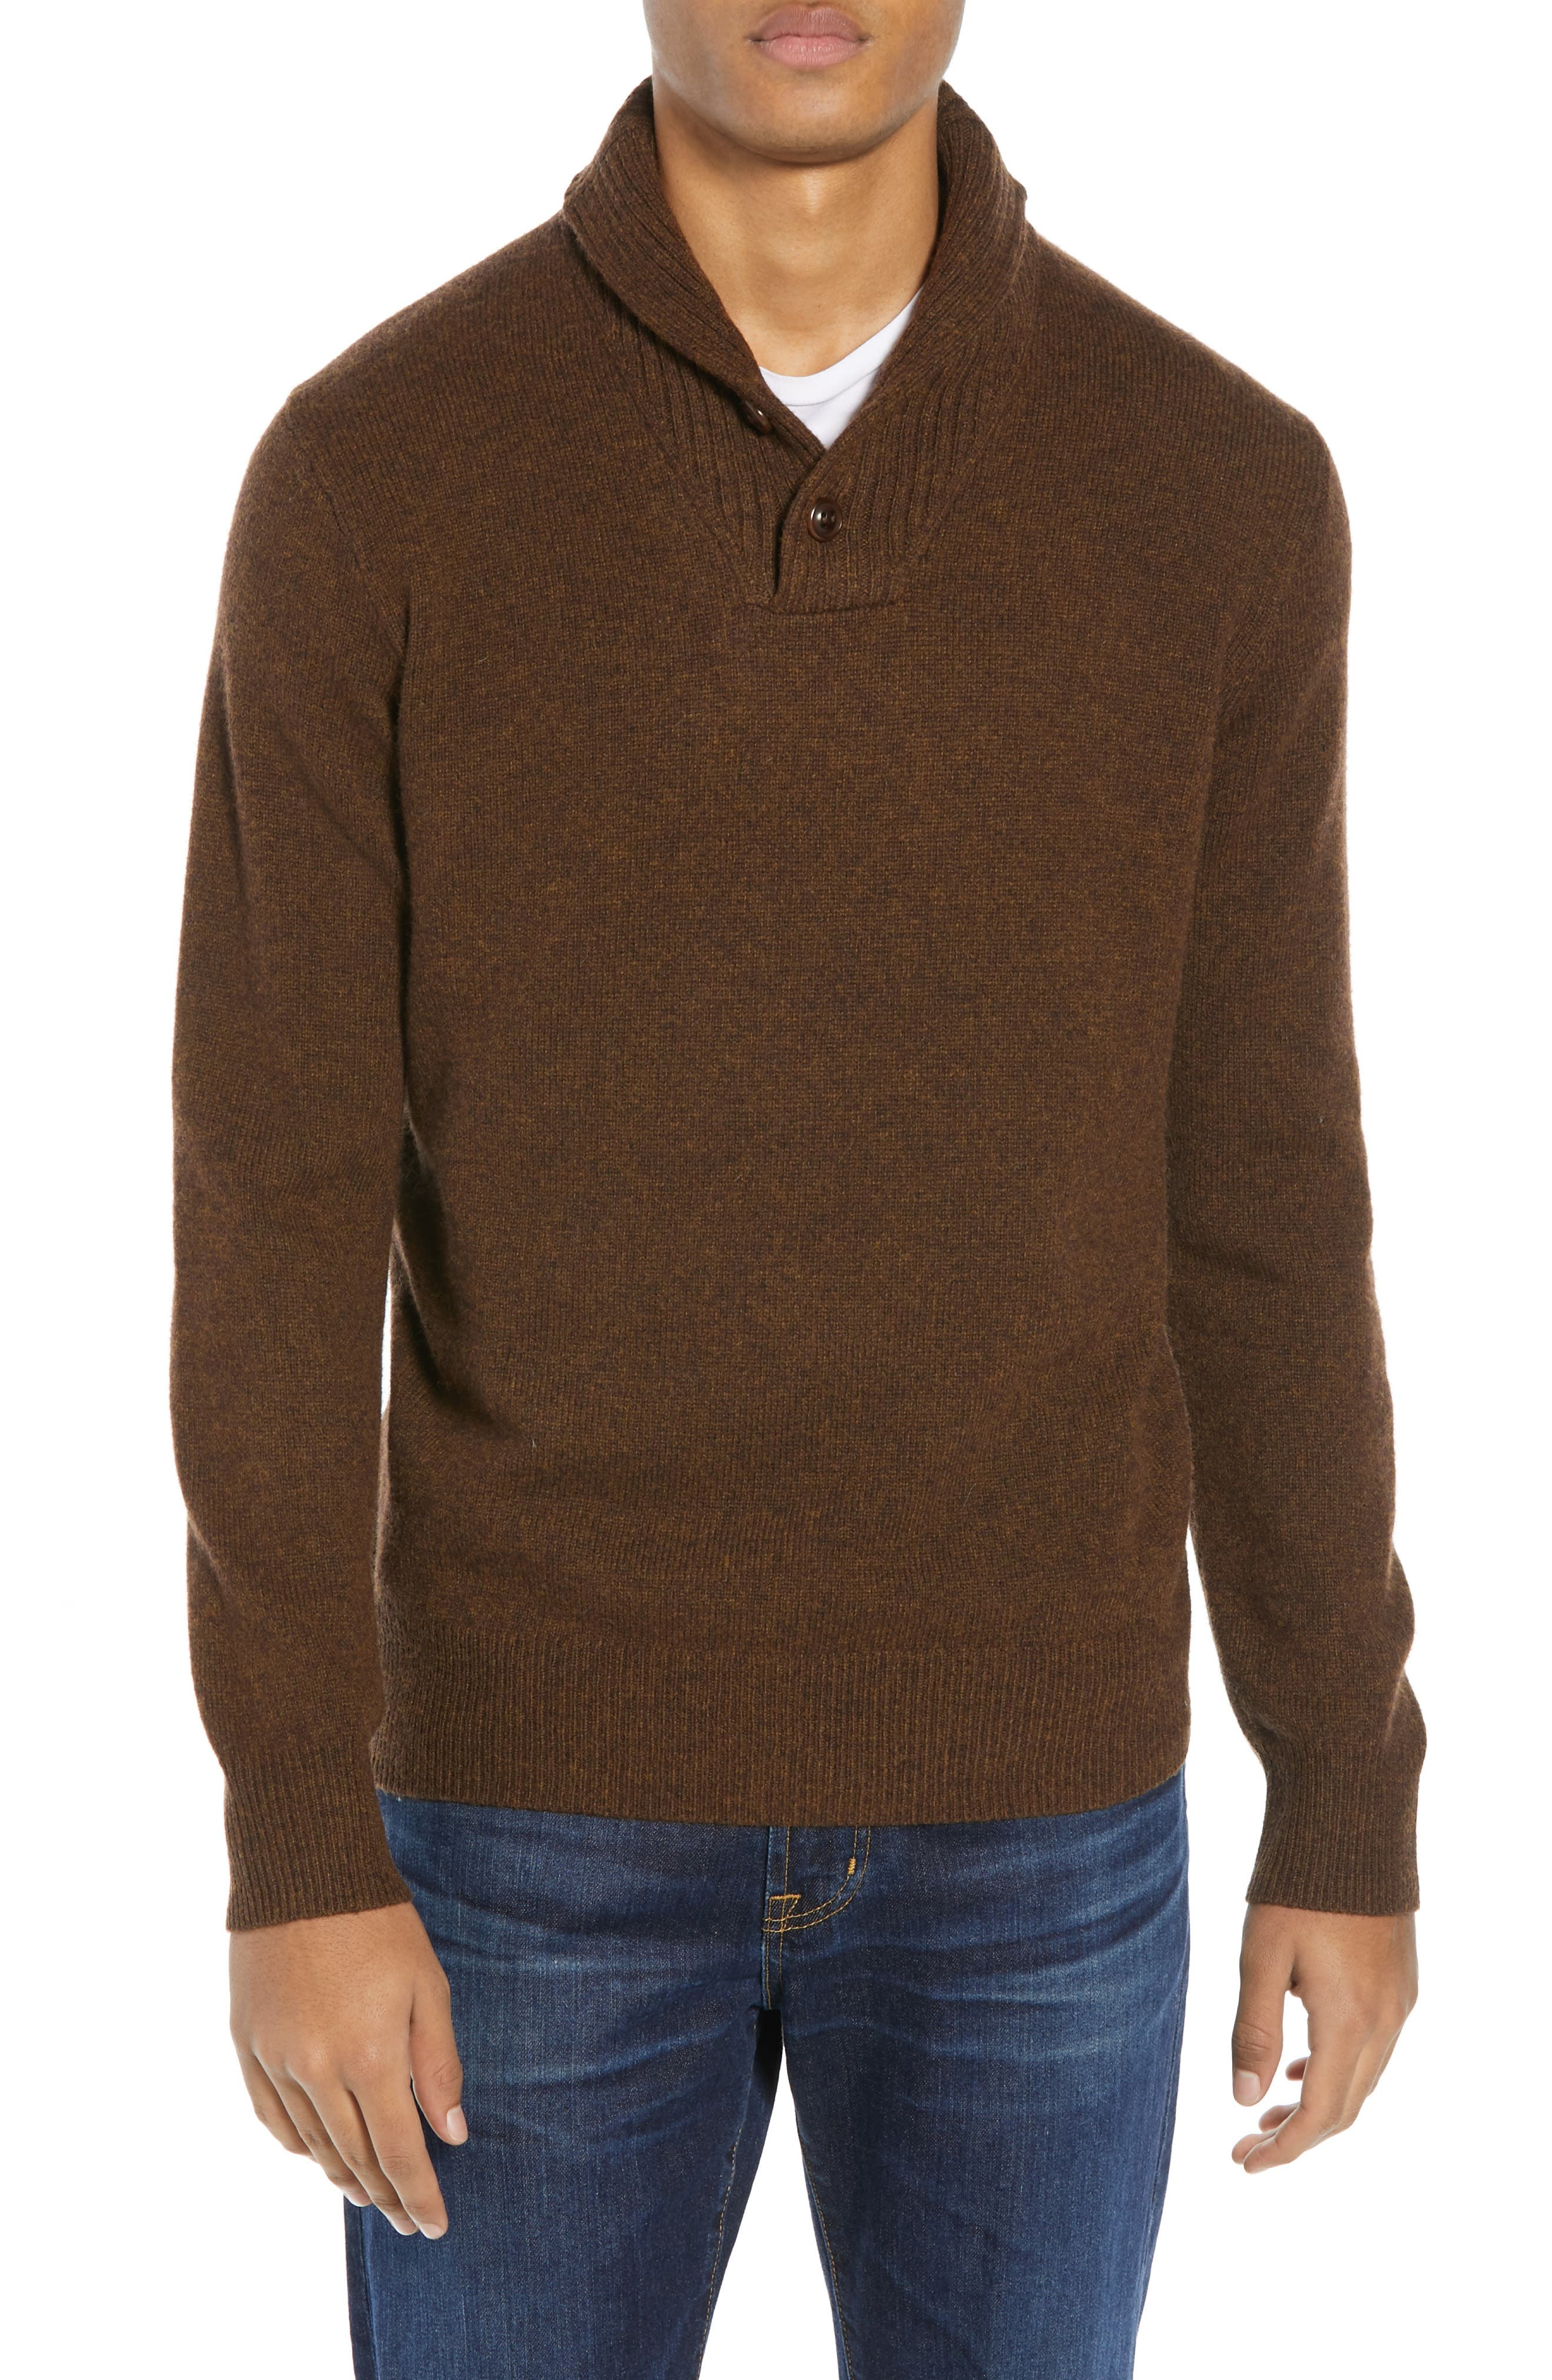 J.crew Rugged Merino Wool Blend Shawl Collar Pullover, Brown